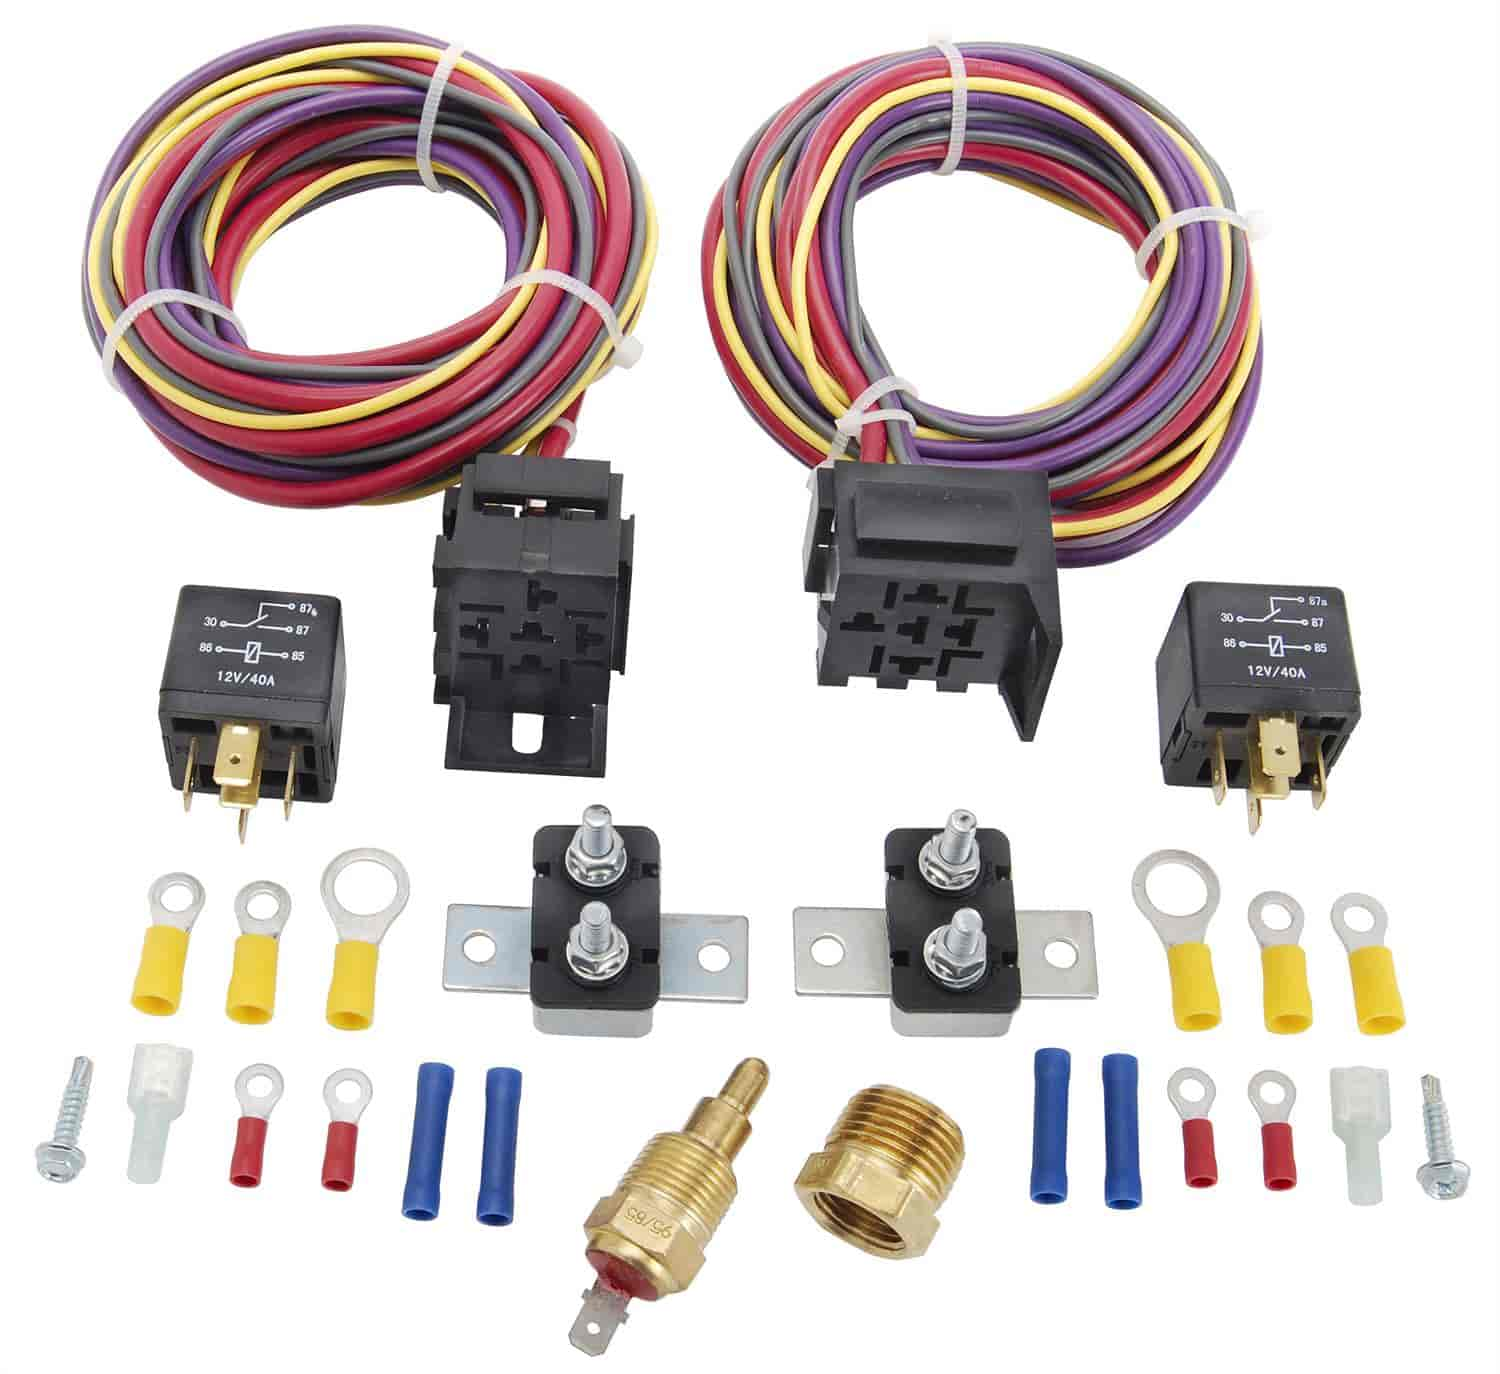 555 10571 jegs performance products 10571 dual fan wiring harness & relay jegs universal wiring harness at edmiracle.co